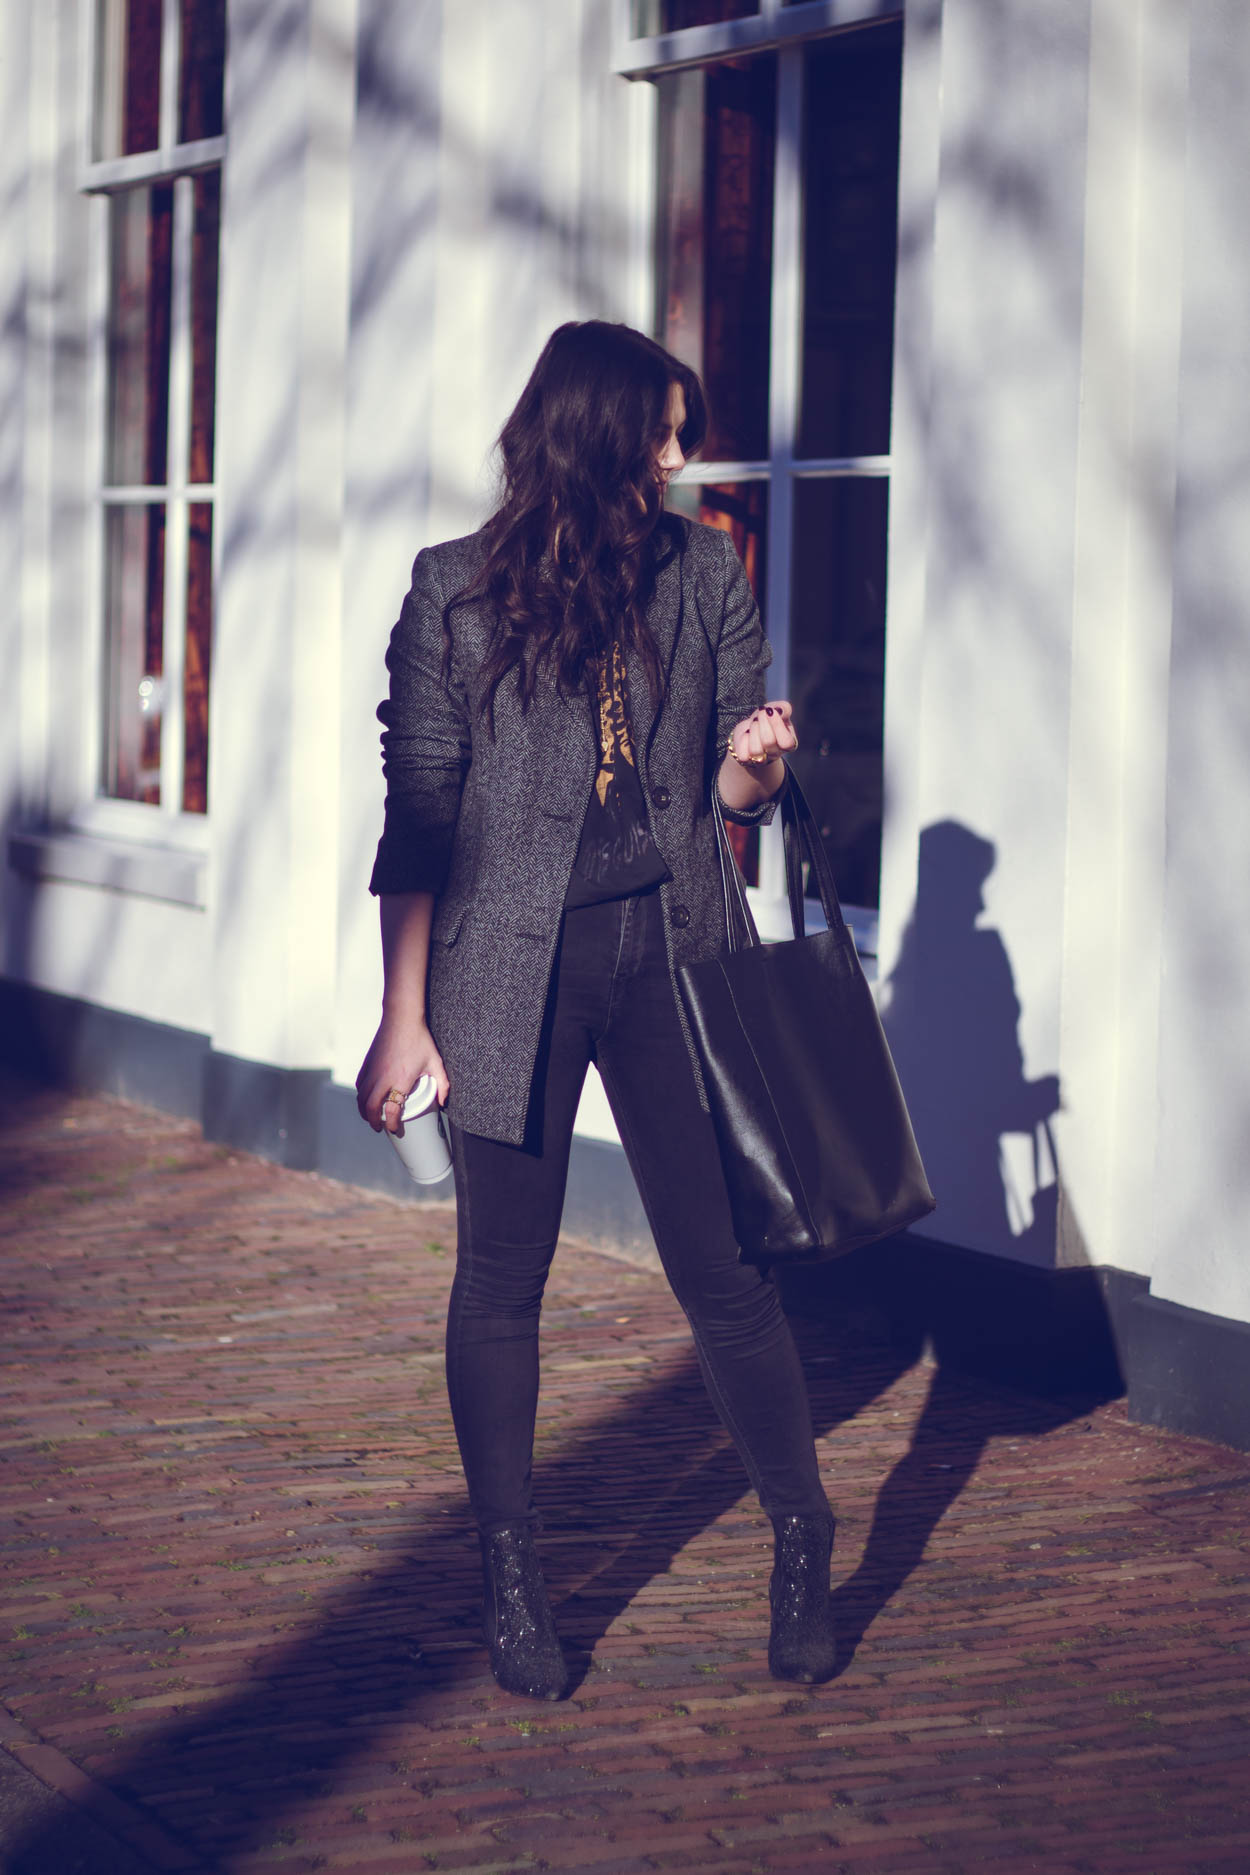 CREATE YOUR SIGNATURE WORK LOOK | THECHICITALIAN | Tips to find your signature work uniform to make you stand out